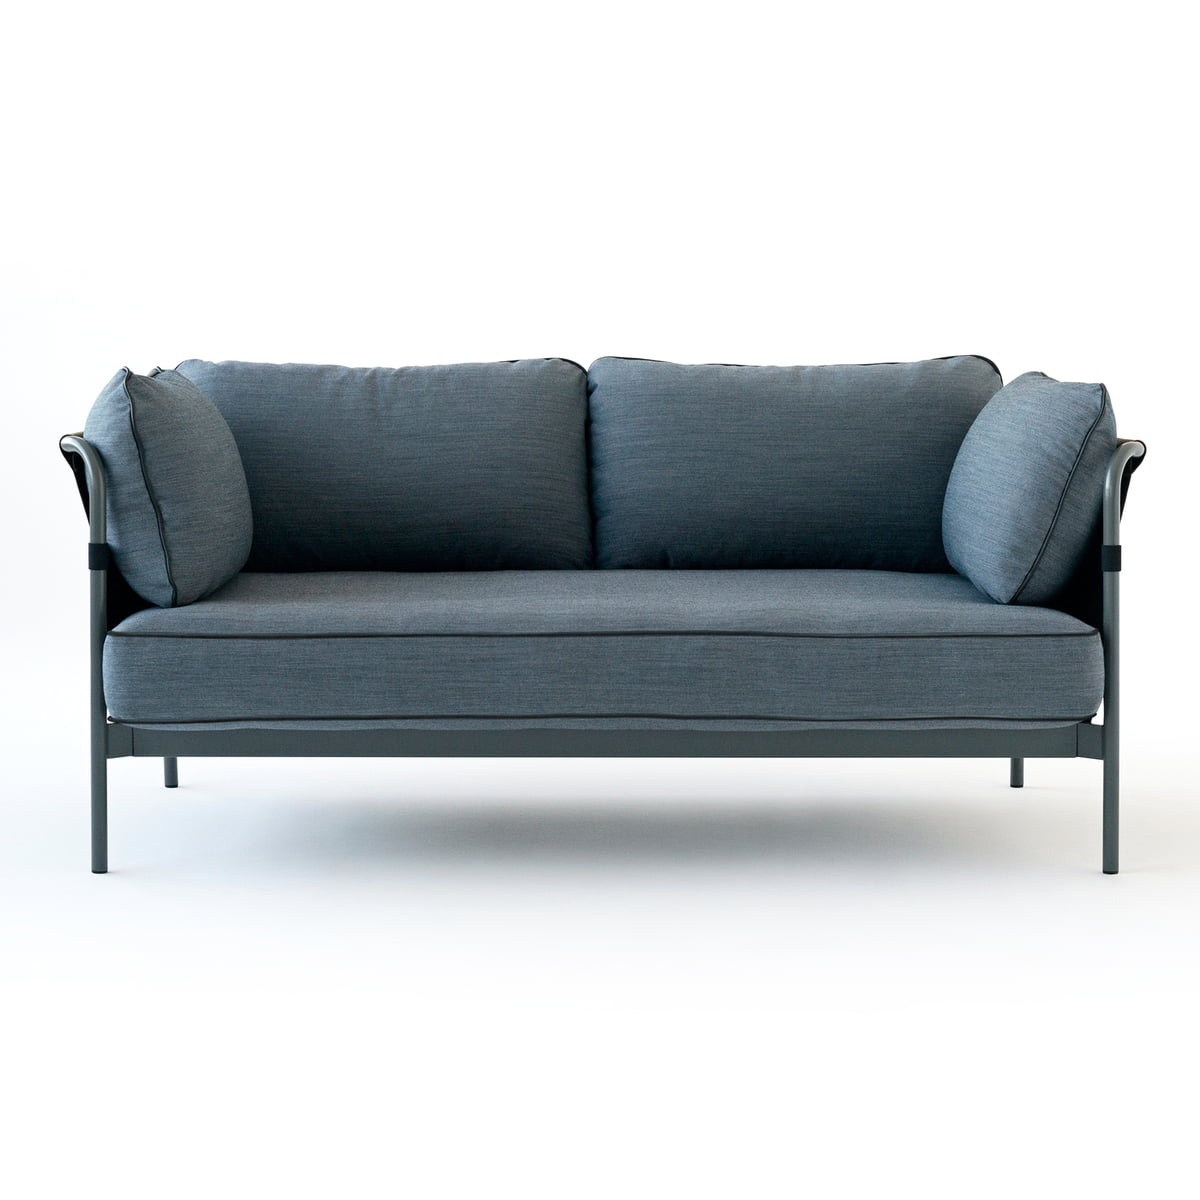 Can 2 Seater Sofa By Hay In Our Interior Design Shop